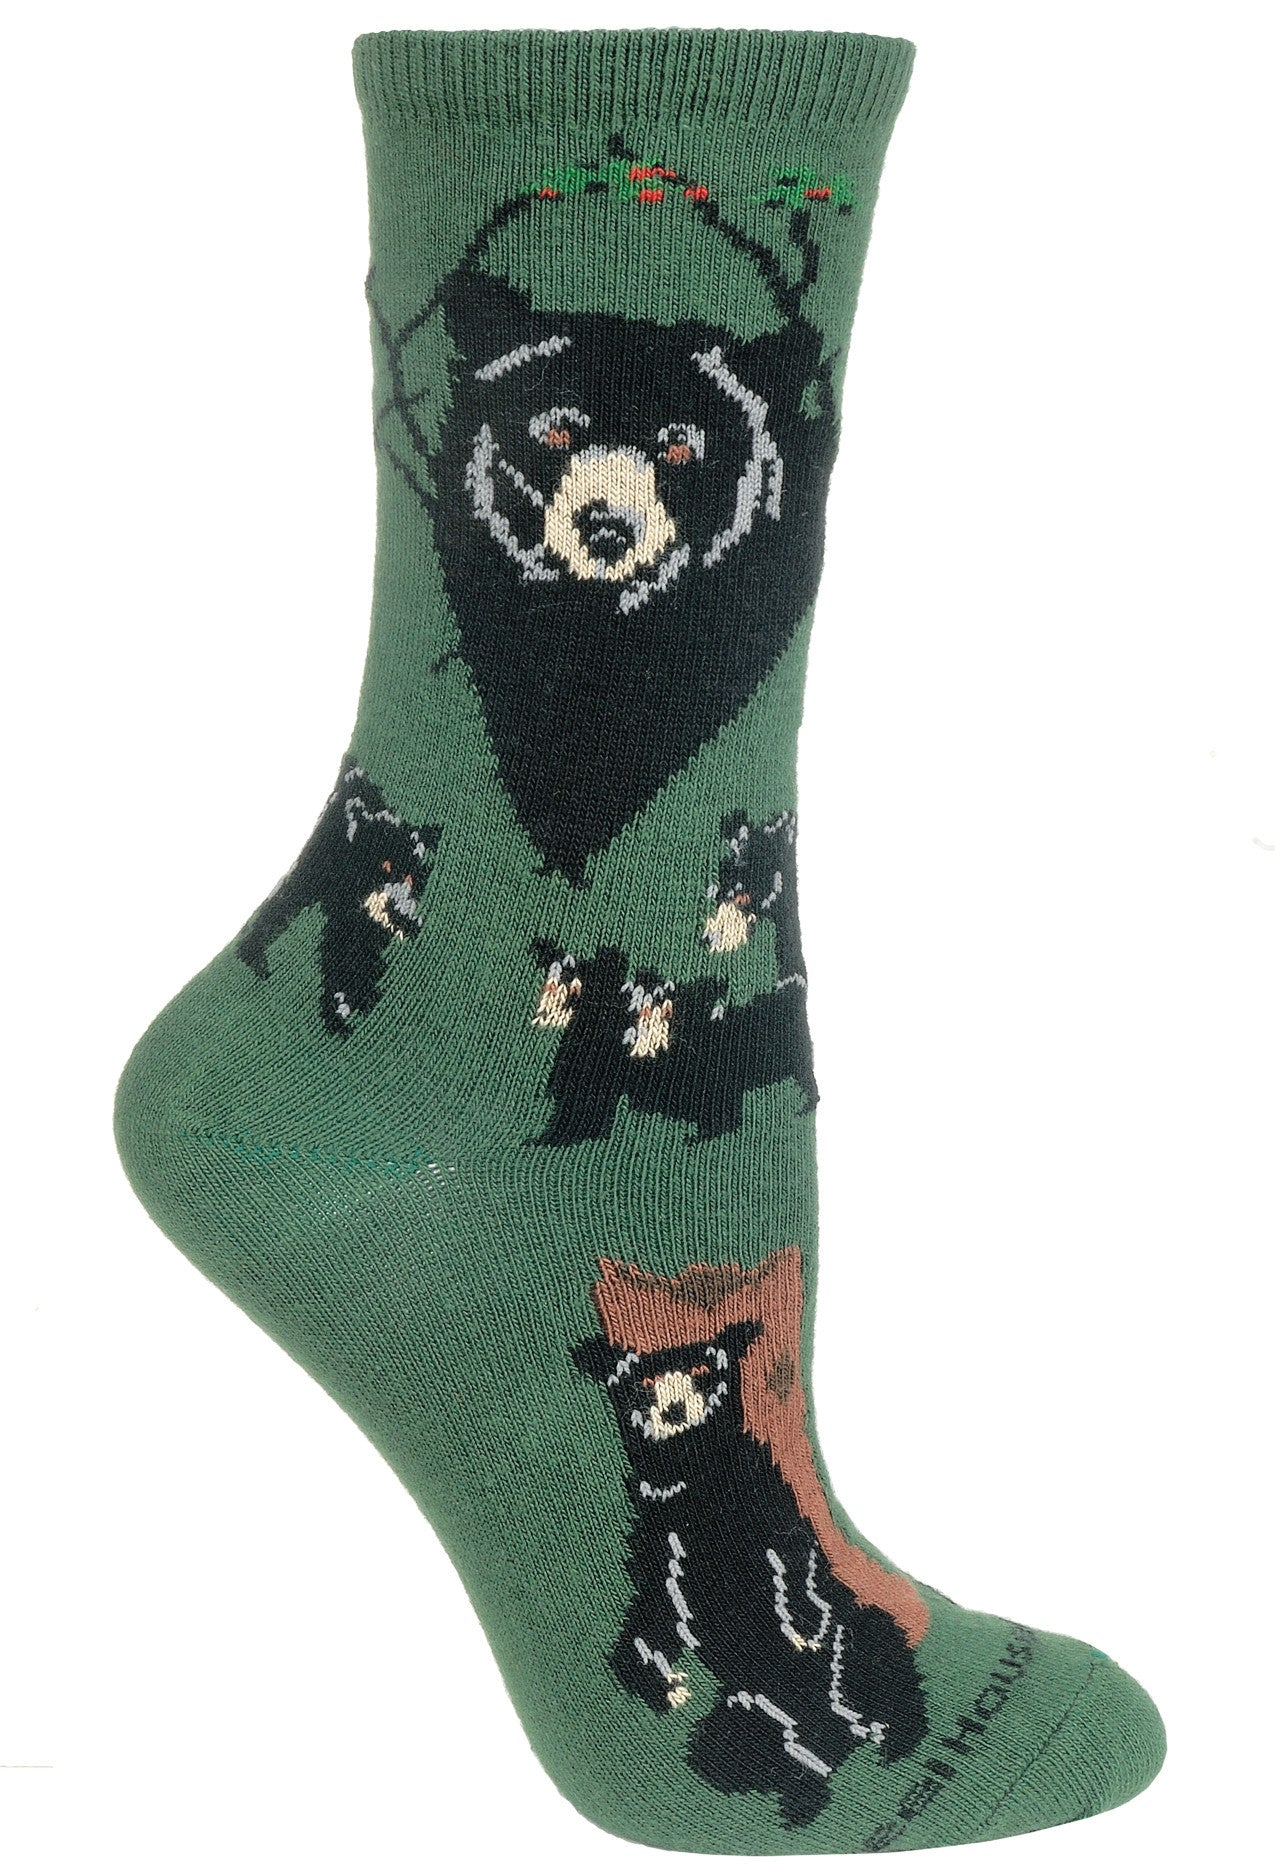 Bear, Black on Hunter Socks